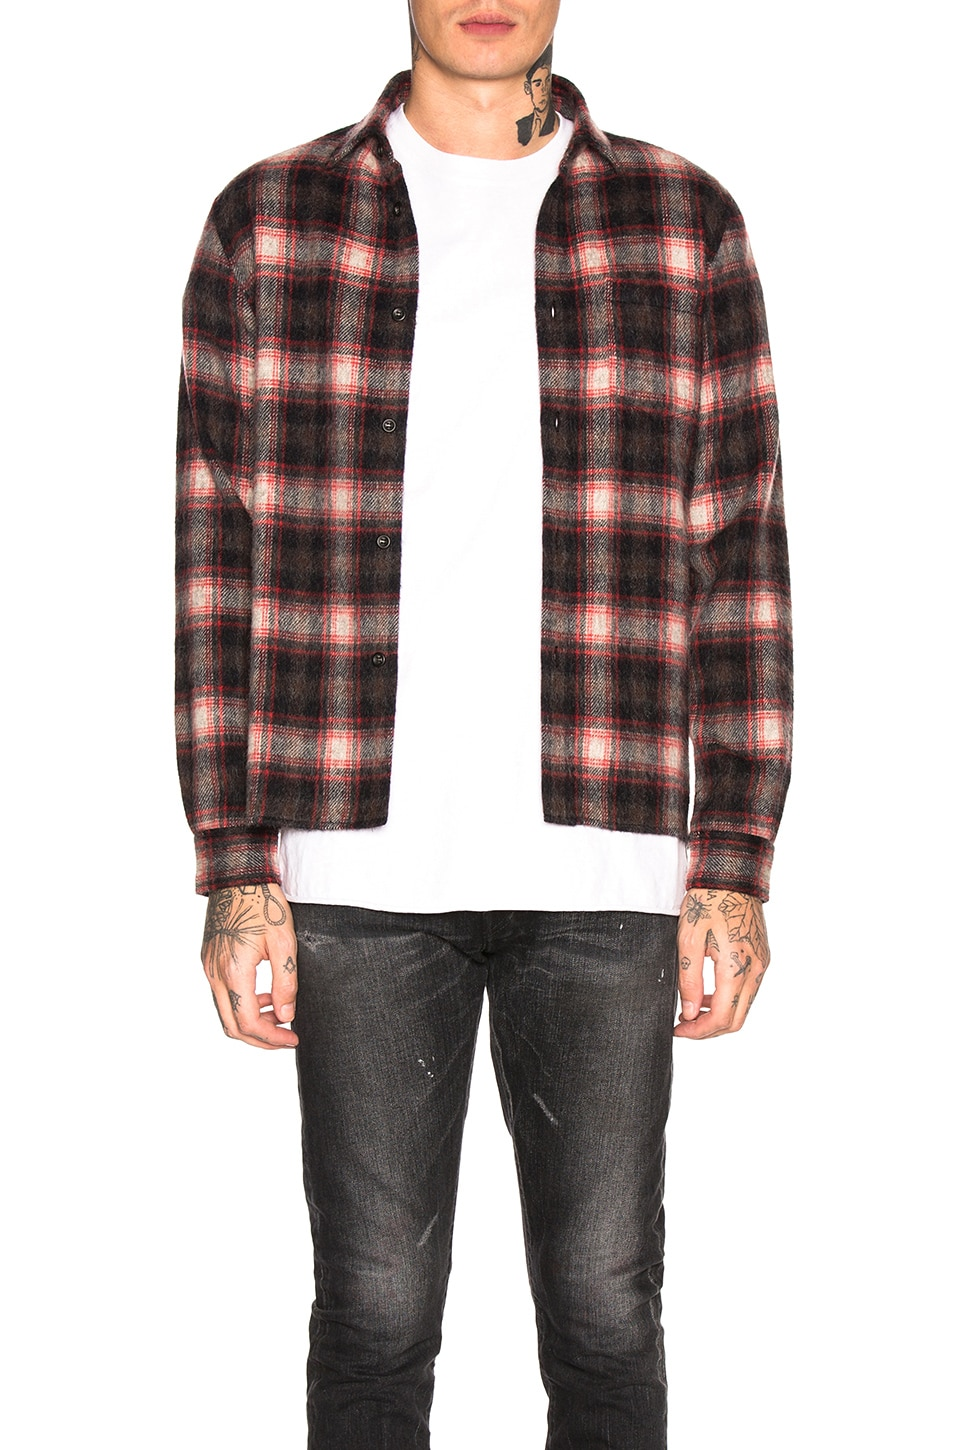 JOHN ELLIOTT Wool Flannel Shirt in Red & Black